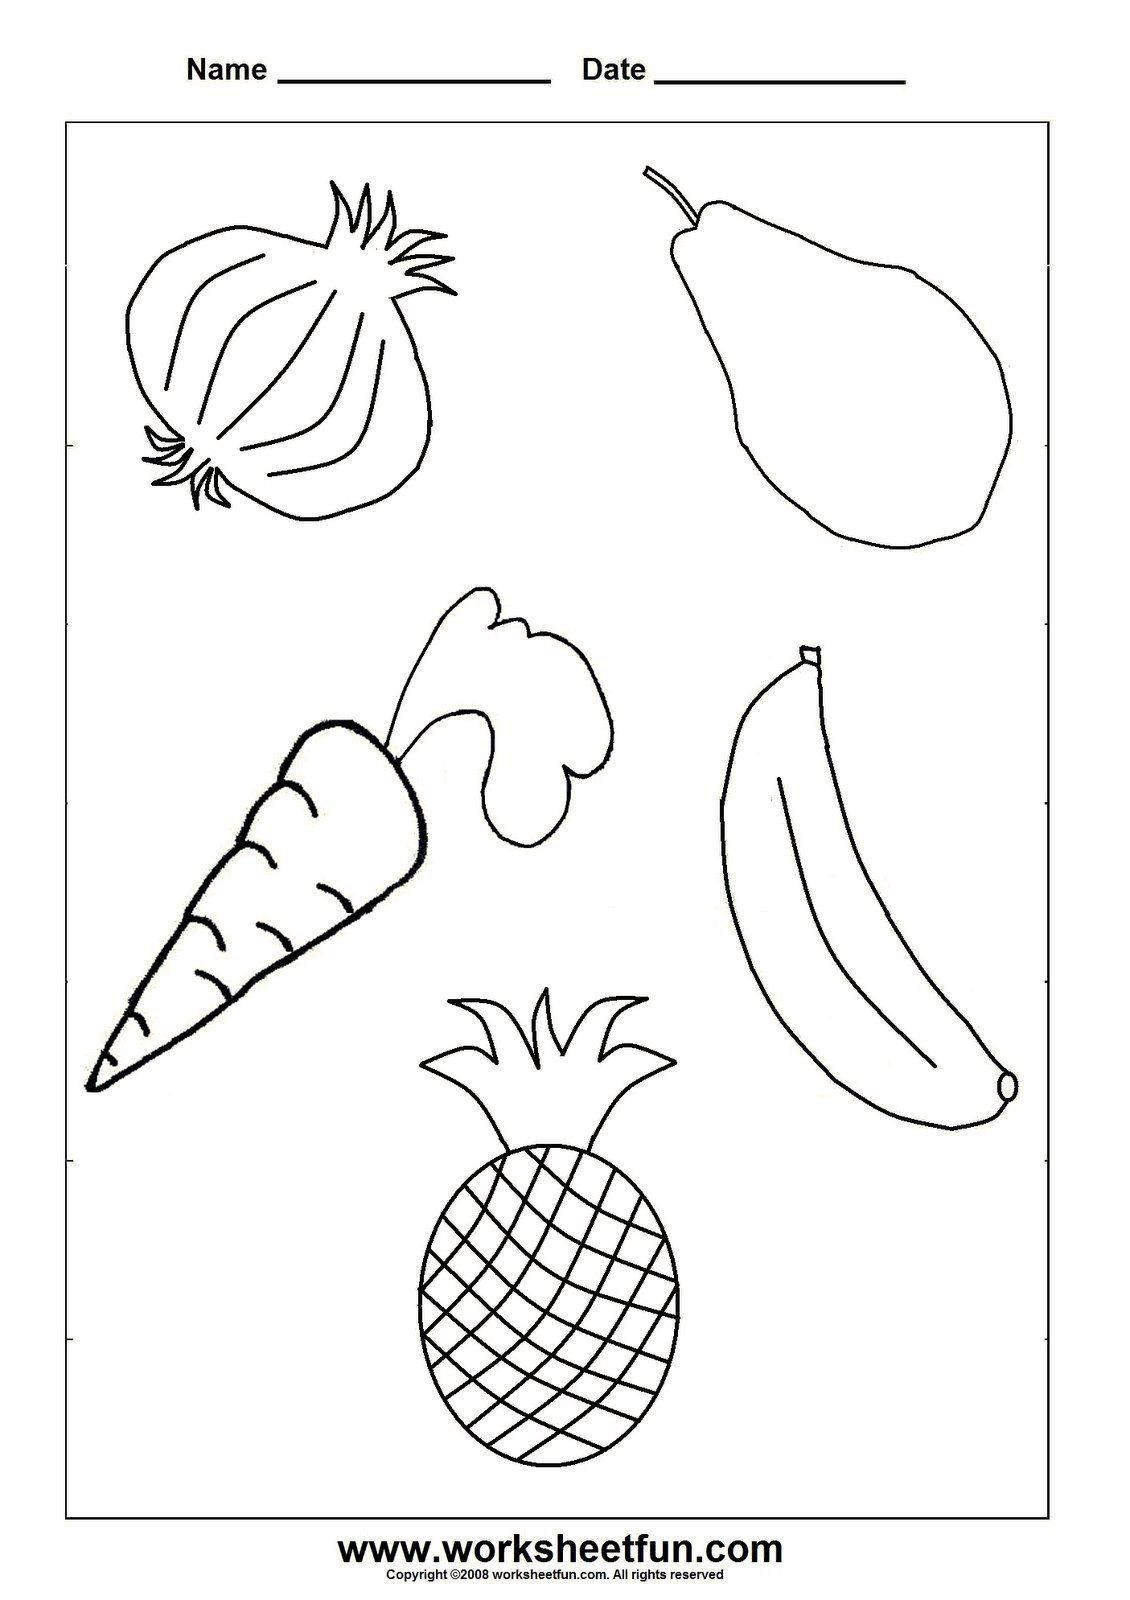 Preschool Fruits and Vegetables Worksheets Pin On Skool